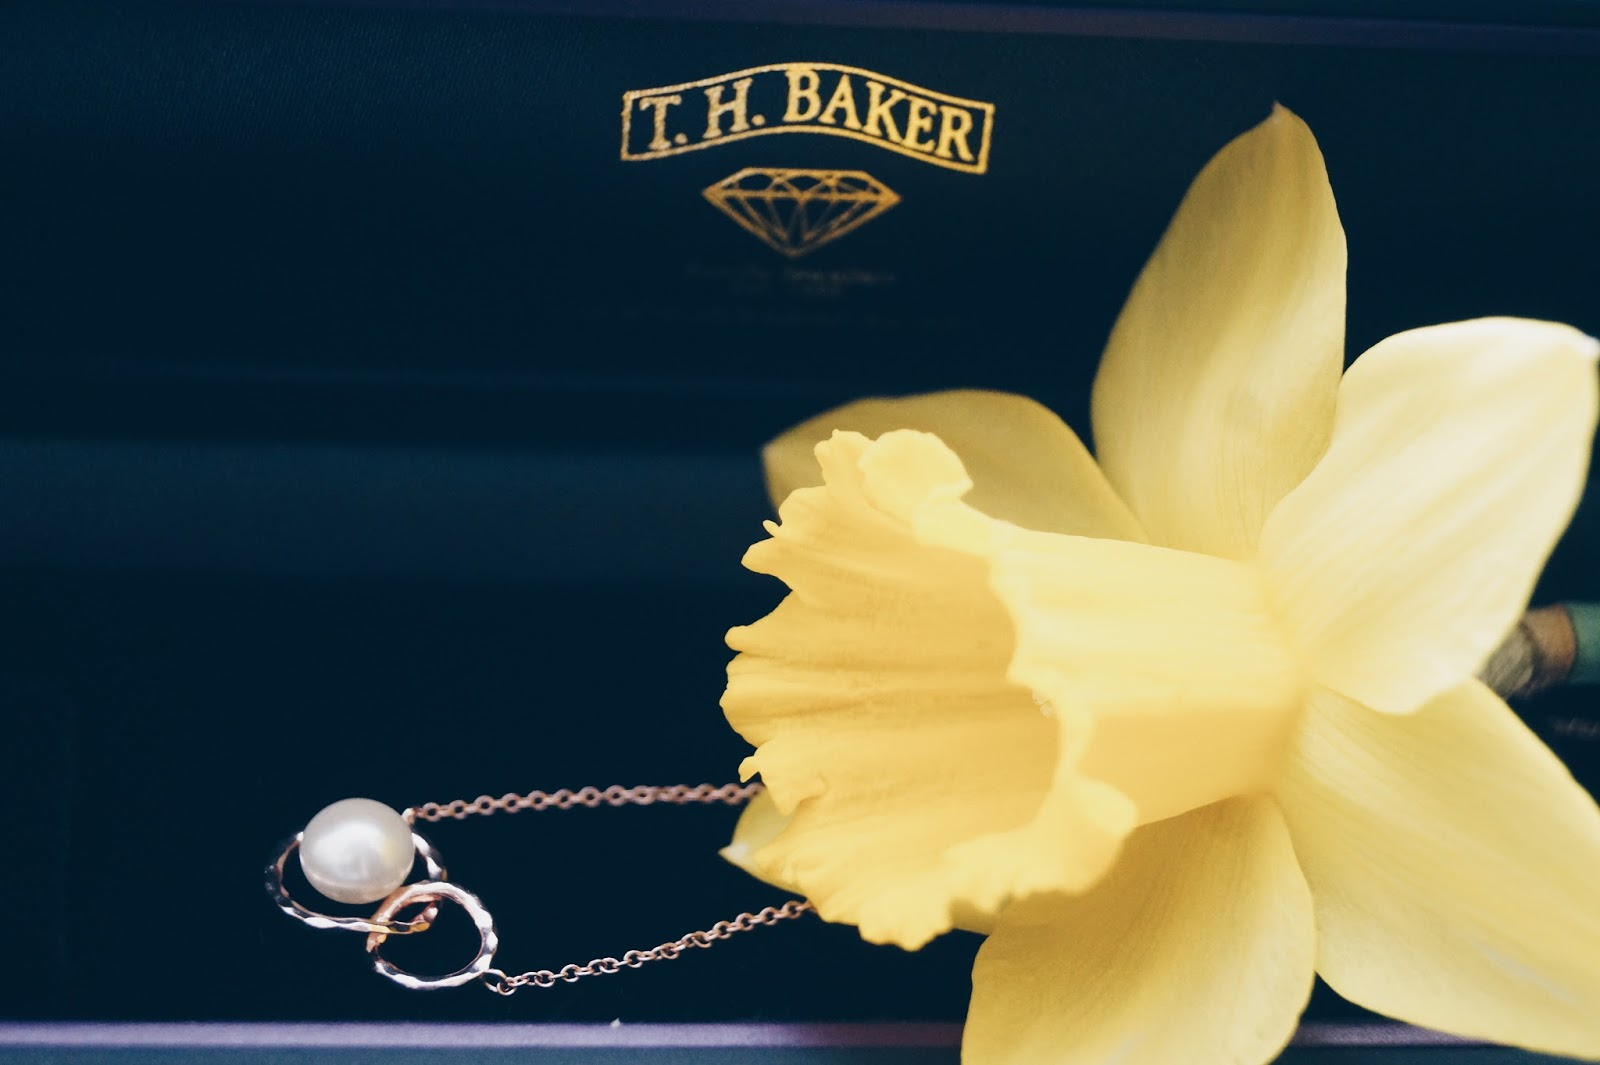 Ana Maddock- Mother's Day with T.H. Baker thbaker.co.uk